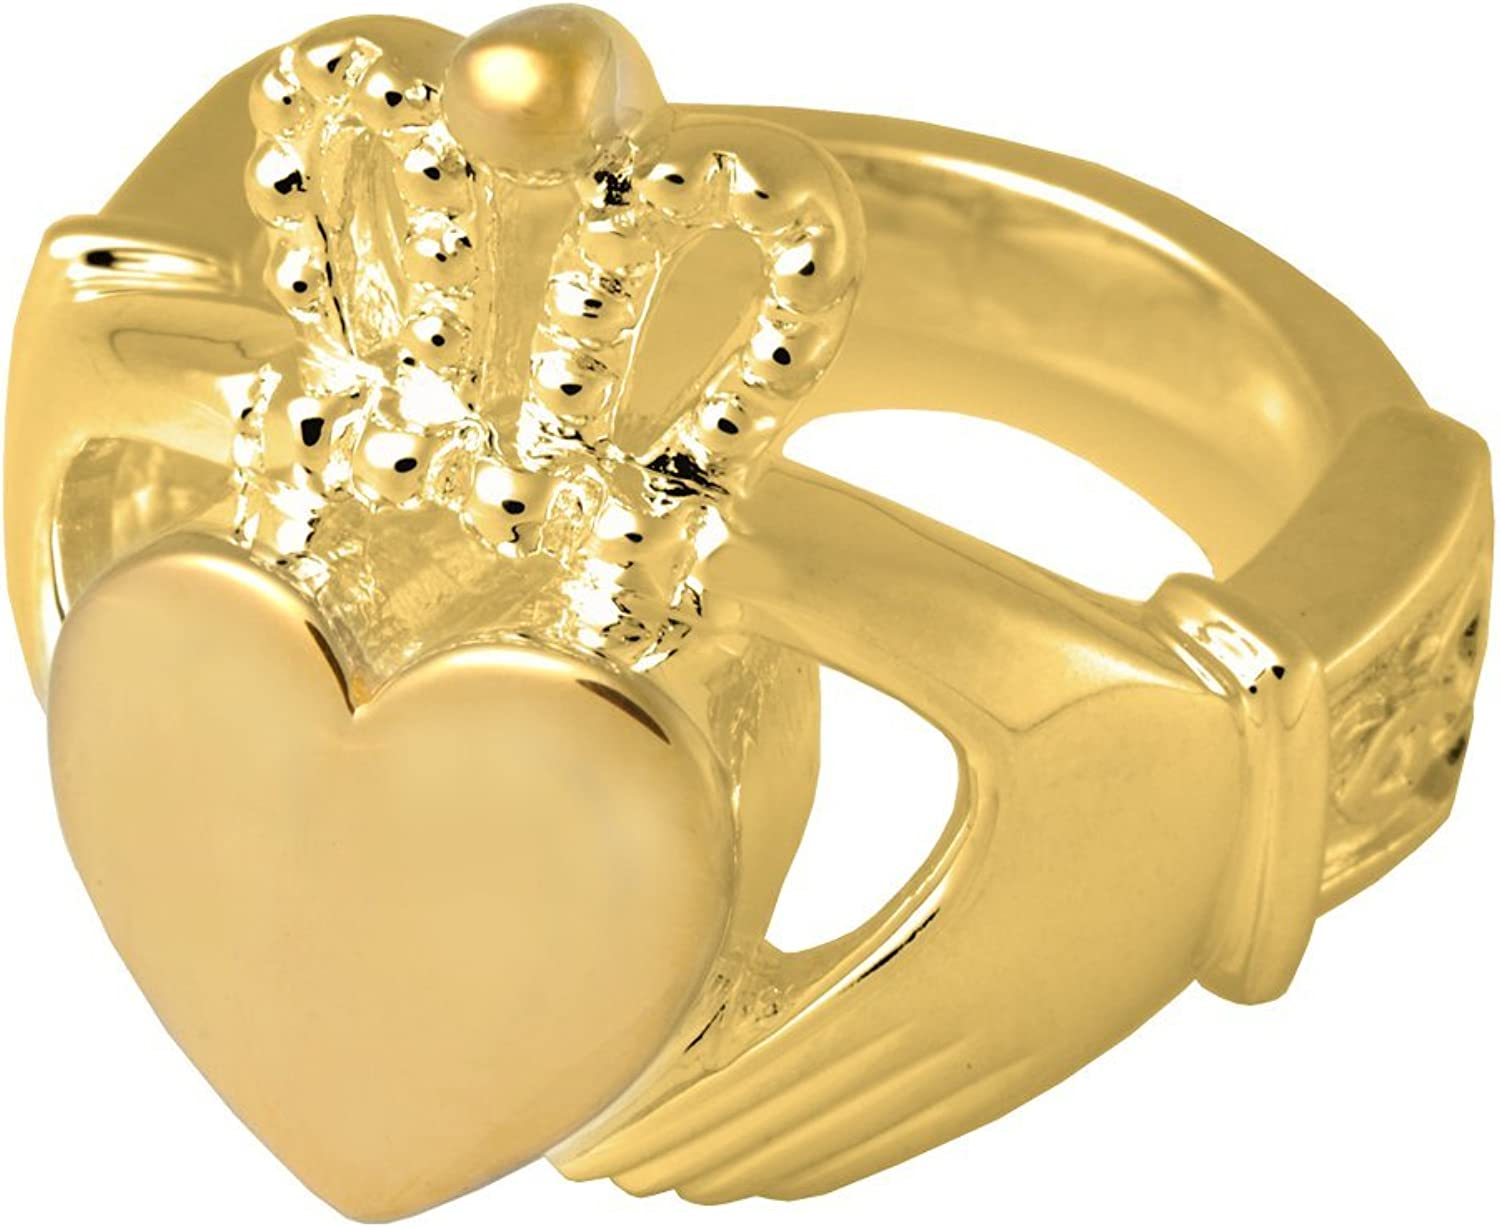 Memorial Gallery 2015GP11 Claddagh Ring 14K gold Sterling Silver Plating Cremation Pet Jewelry, Size 11